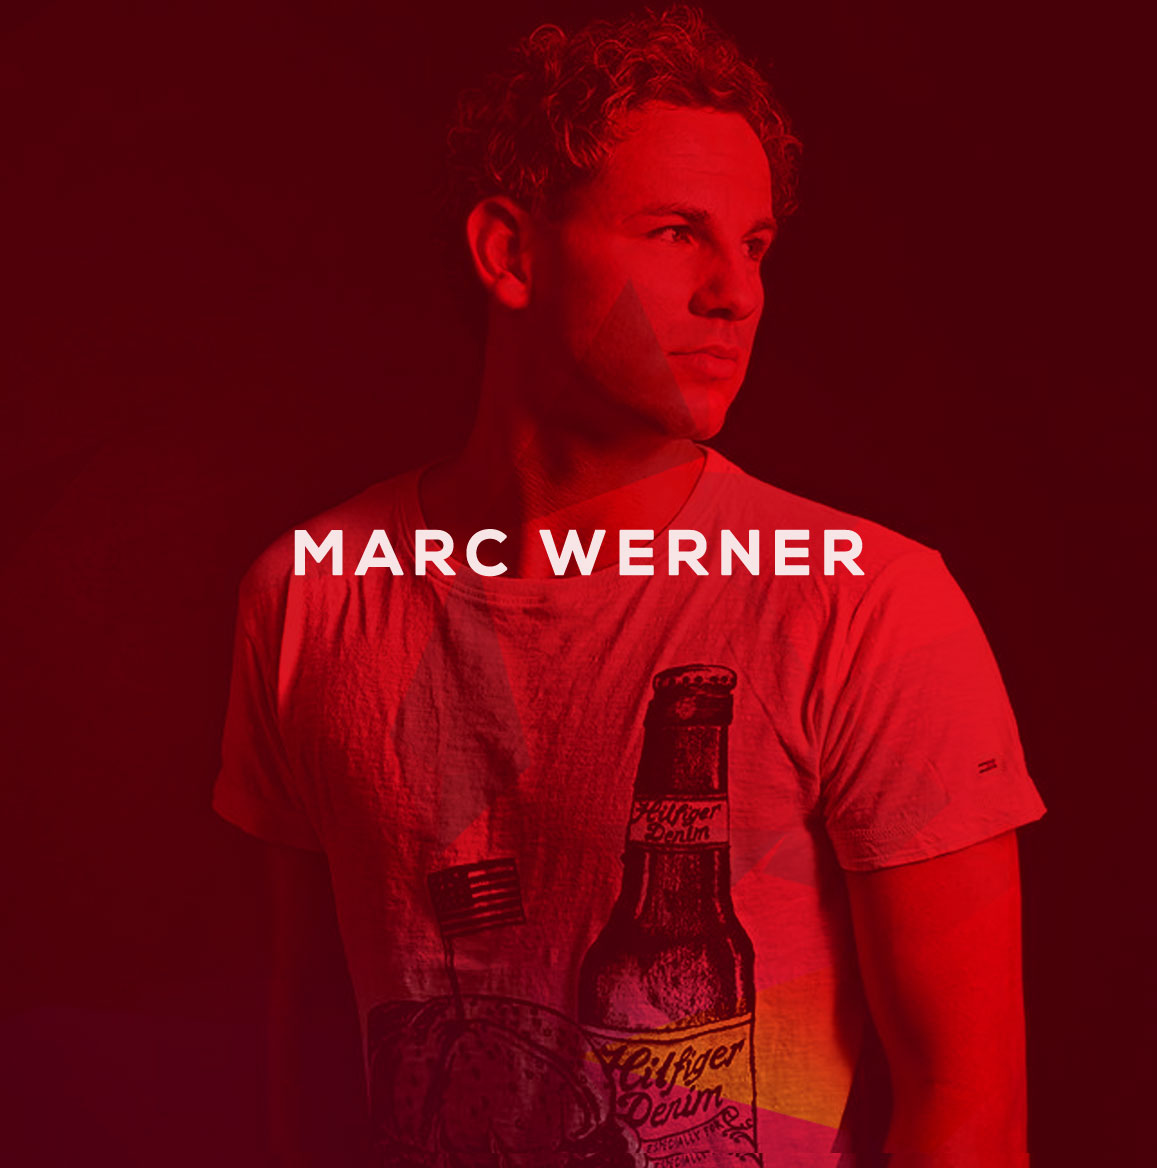 HP-Act-marc-werner